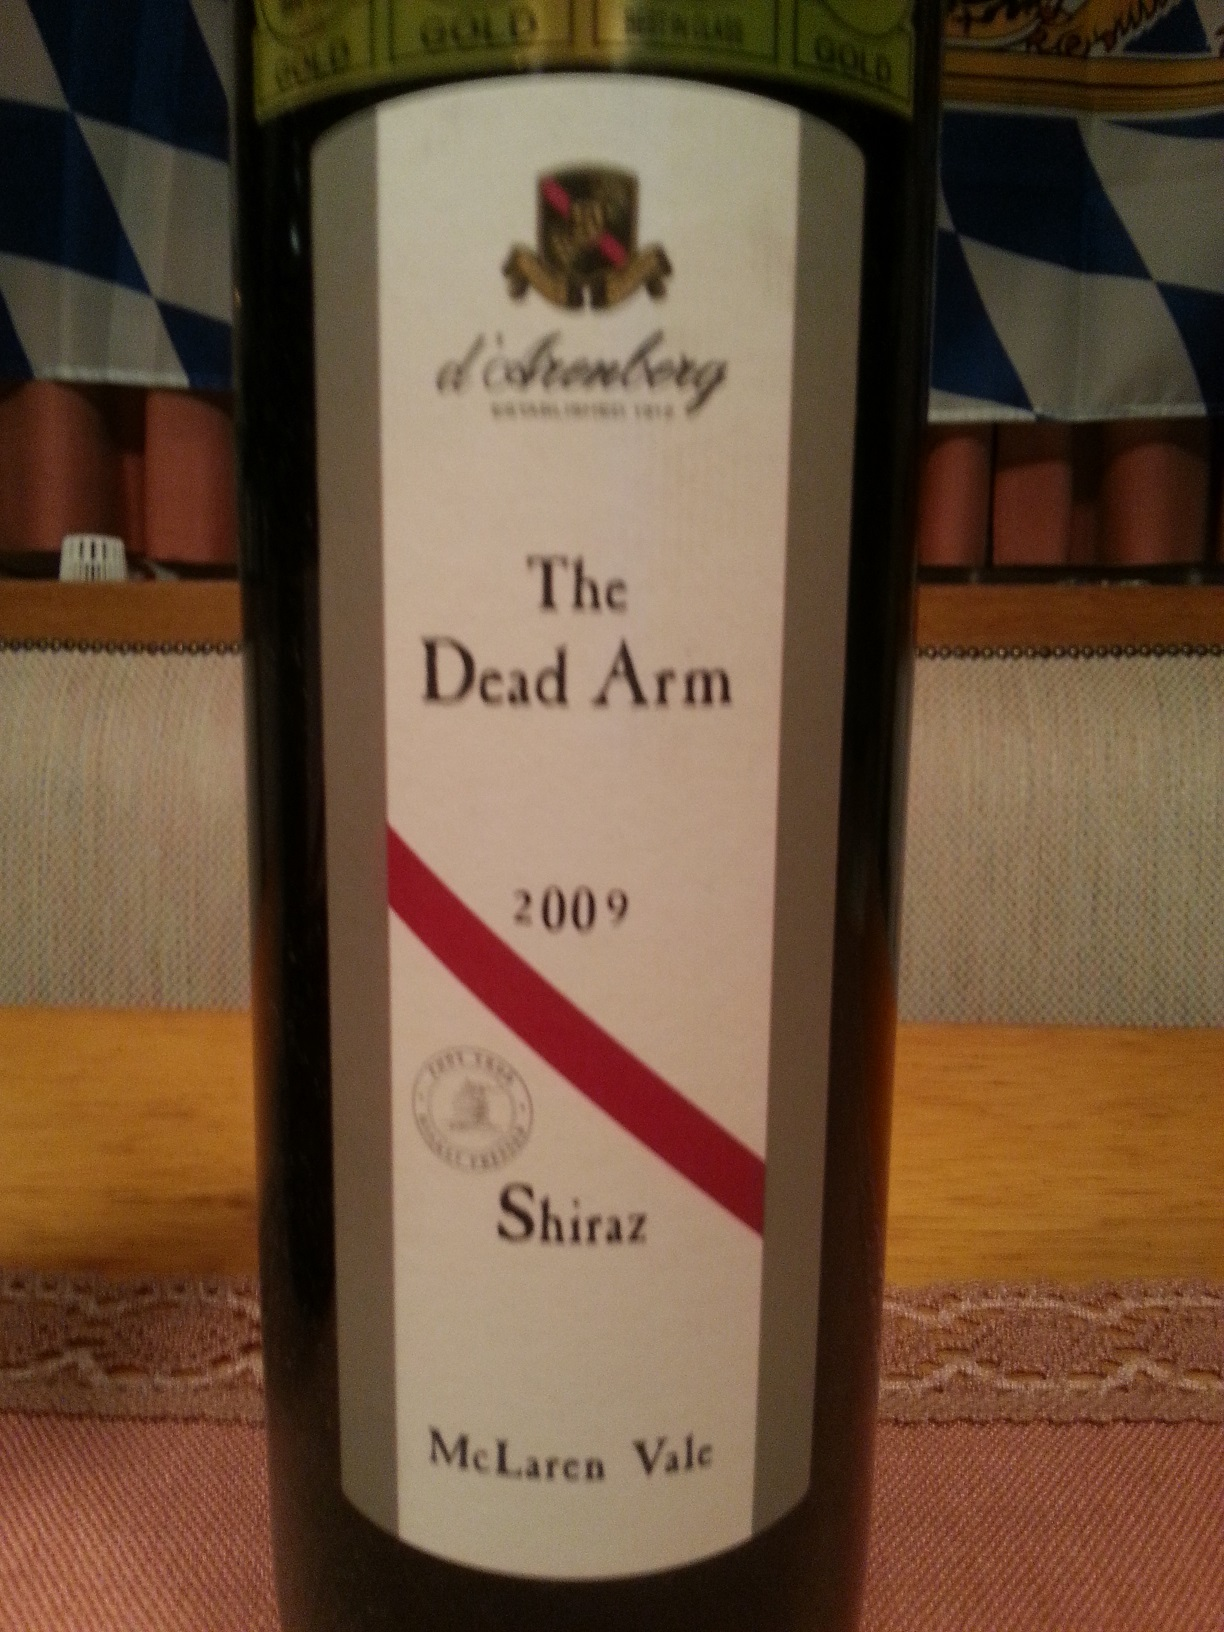 2009 Shiraz The Dead Arm | d'Arenberg